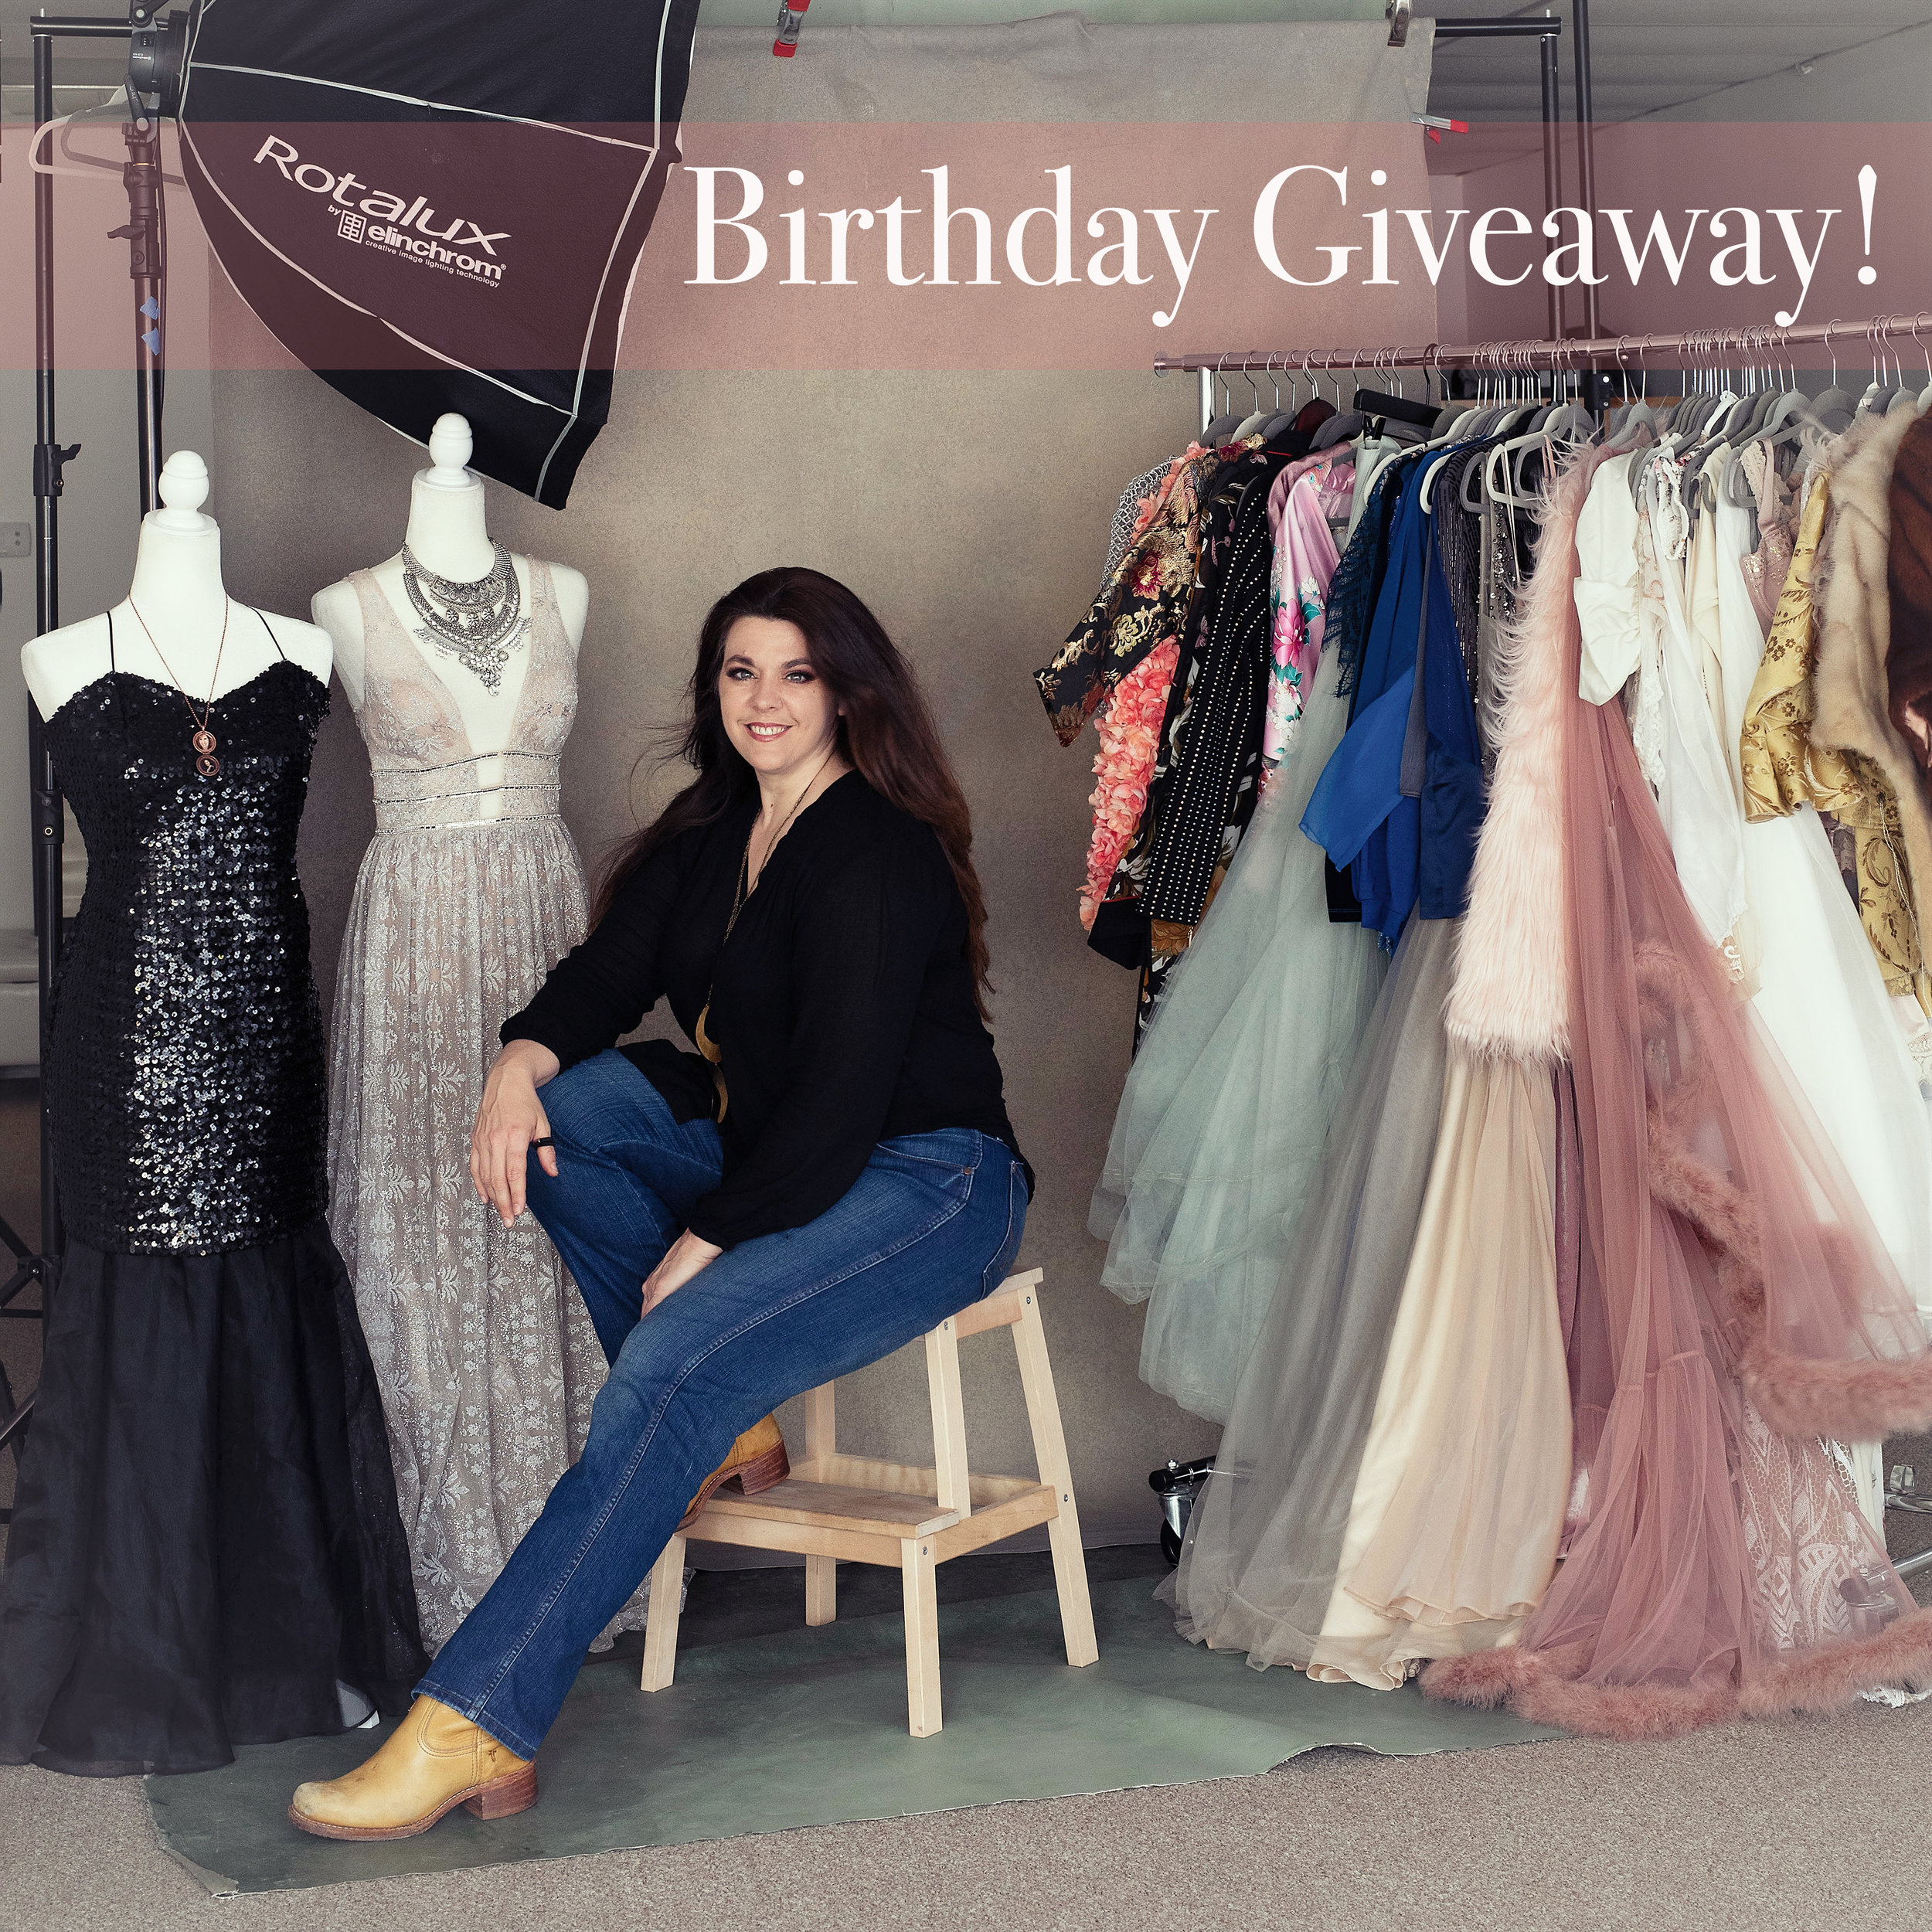 birthday giveaway - Asheville photographer - photo contest